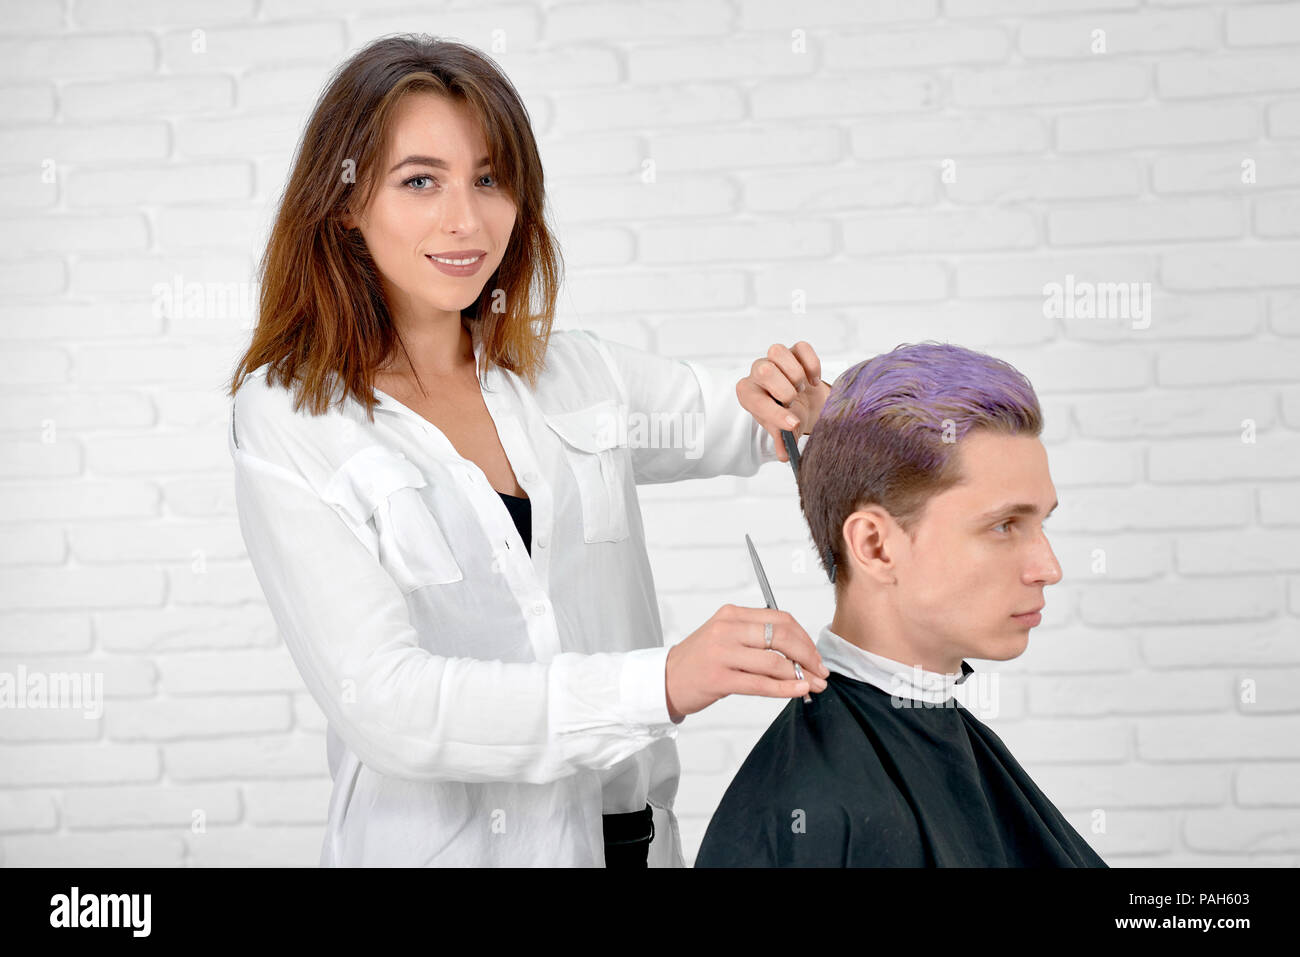 Female hairstylist doing haircut for young client with toned in violet color hair. Hairdresser using sharp metallic scissors and black plestic comb. Master wearing white shirt and looking at camera. - Stock Image